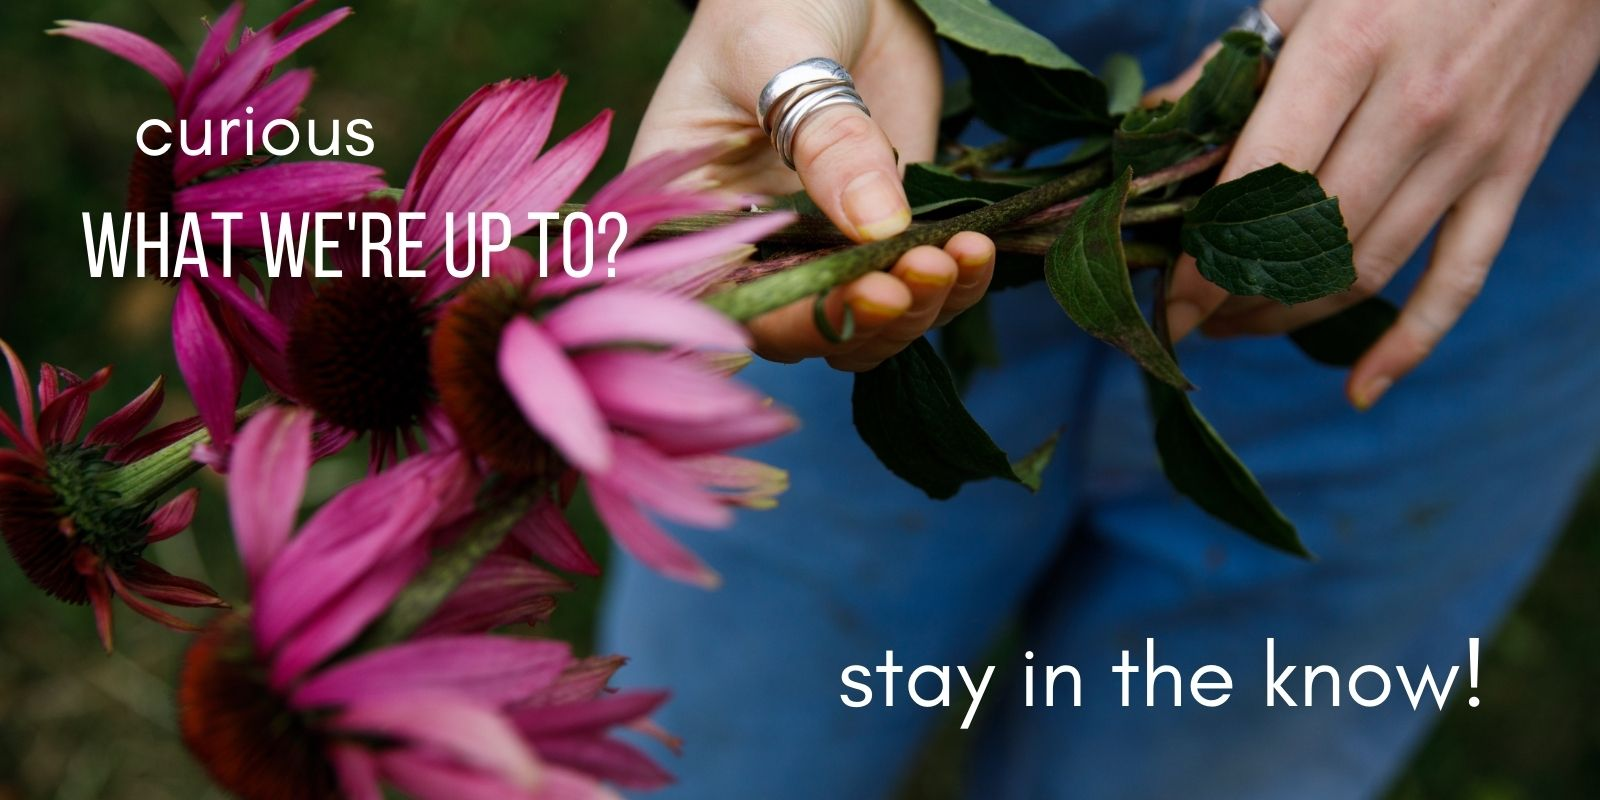 Curious what we're up to at Herbal Revolution? Join our newsletter to stay in the know!